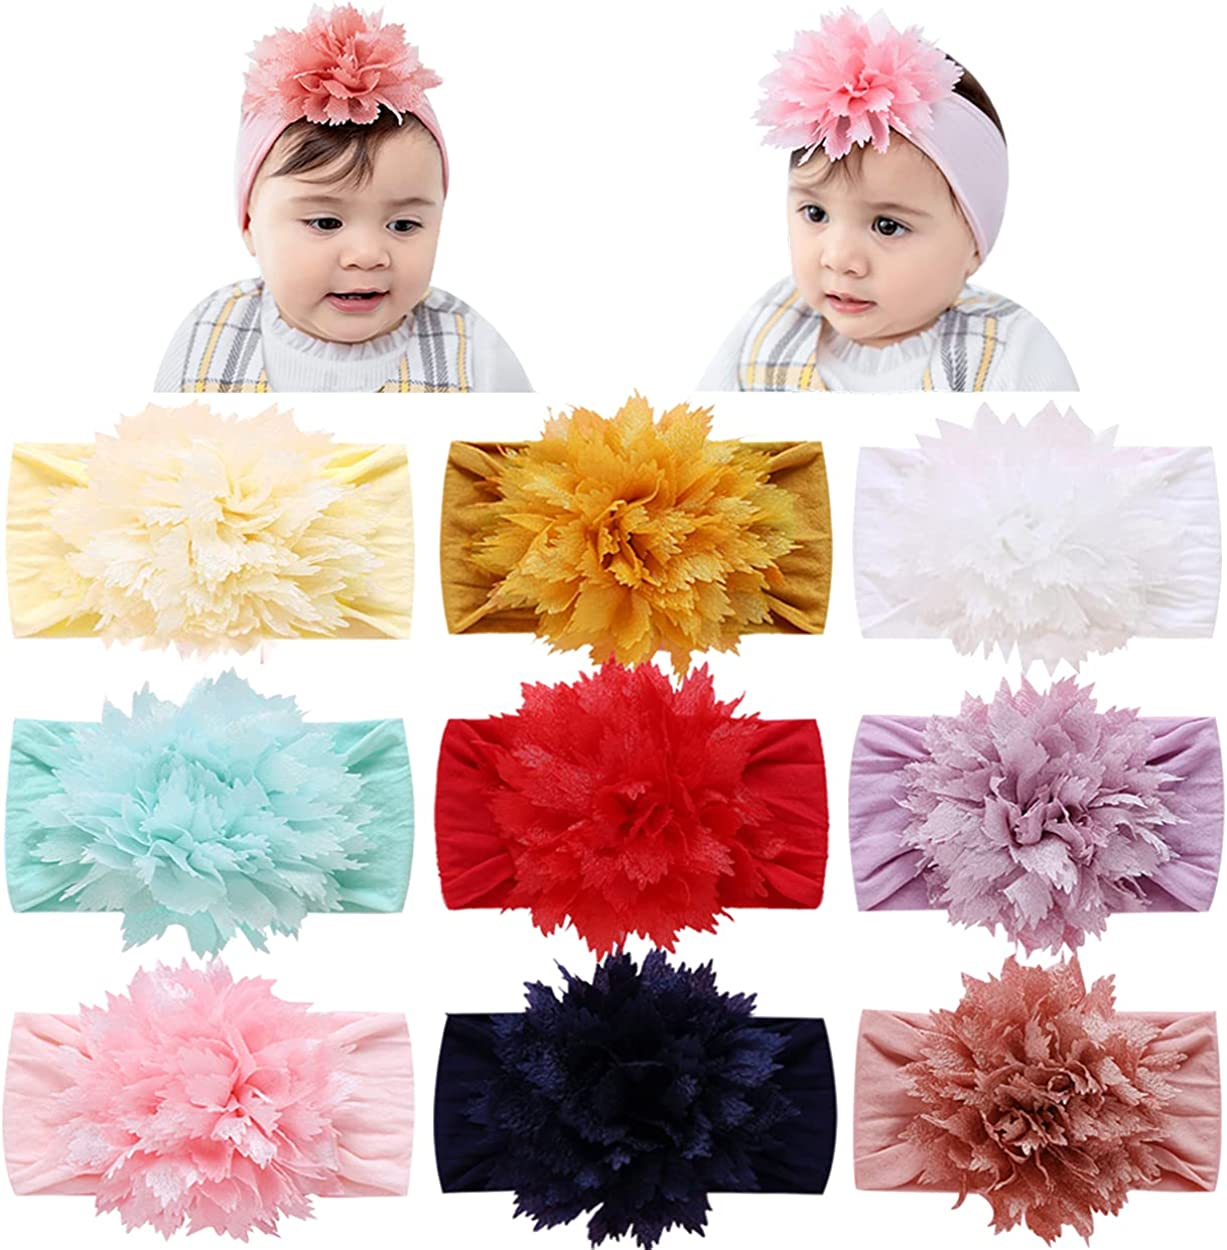 9PCS Baby Headbands for Girls Hair Bows Headband with Flower Nylon Head Wrap for Babies Soft Head Wrap Stretchy Hair Accessories for Newborn Infant Toddlers Kids